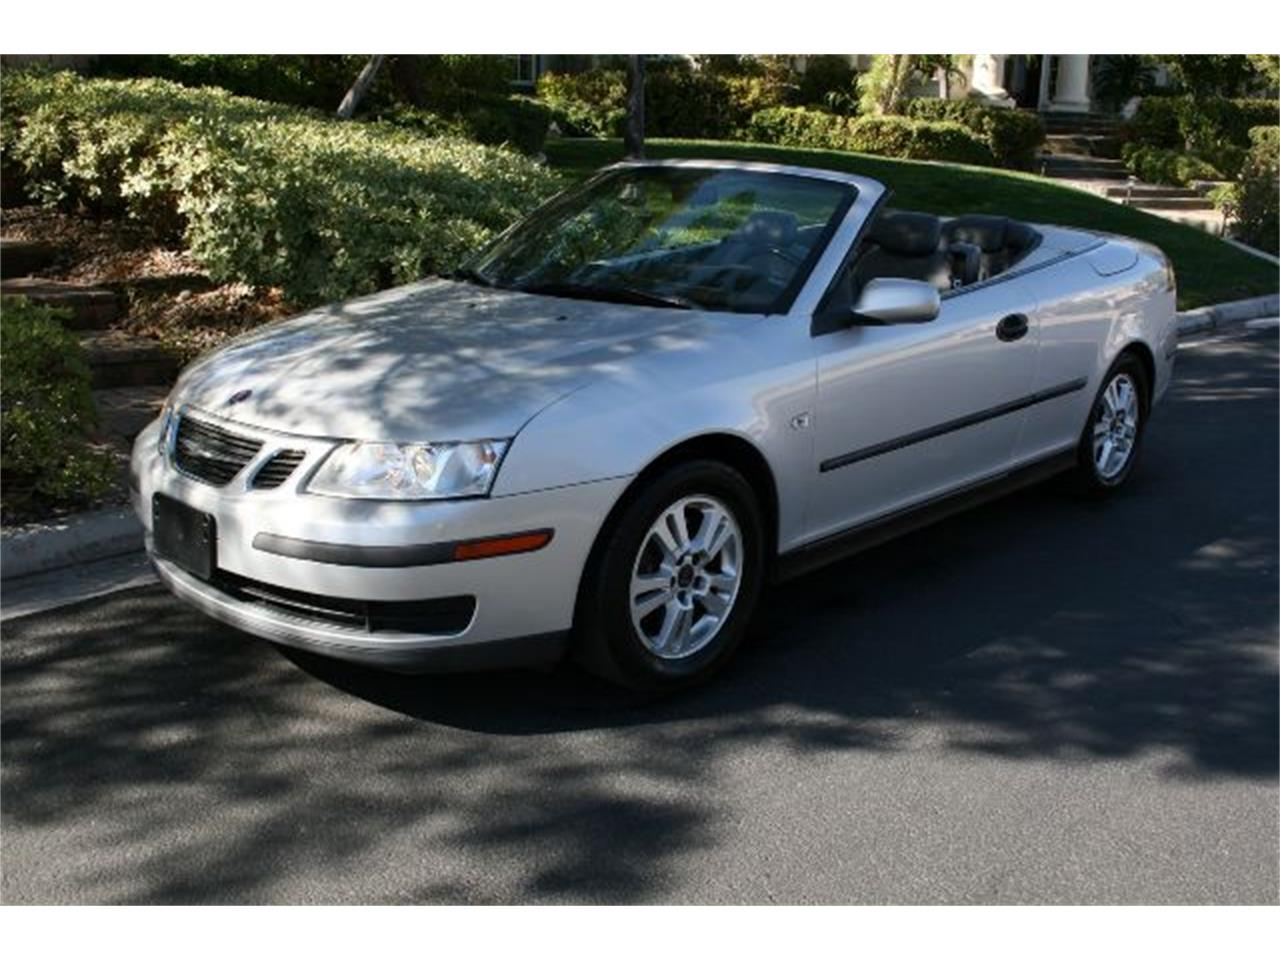 2005 Saab 9-3 (CC-1414750) for sale in Palm Springs, California